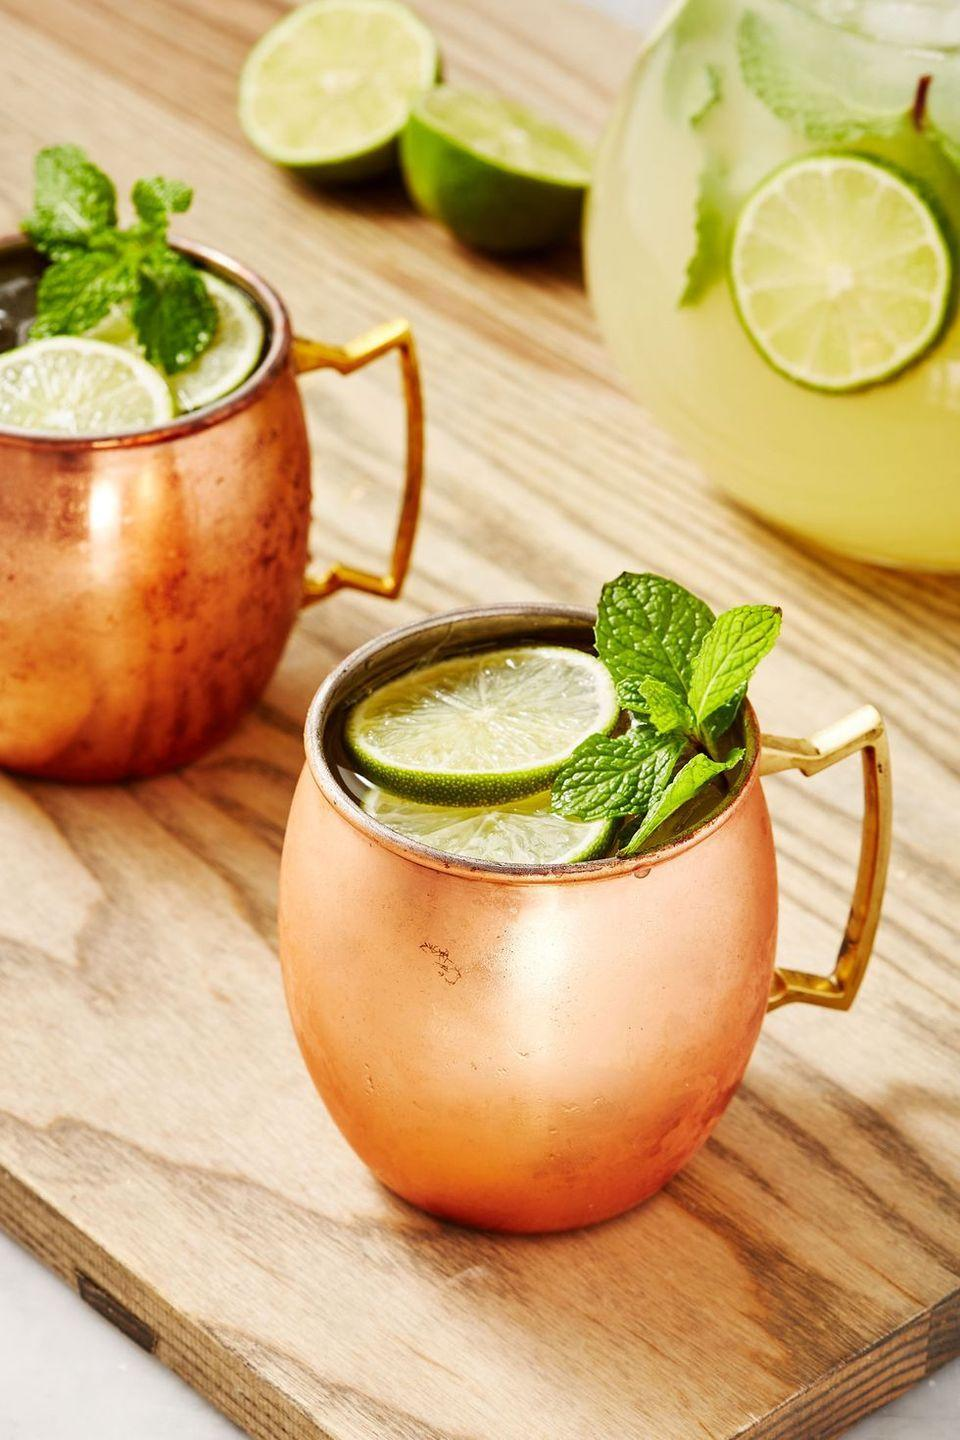 """<p>A Moscow mule is a crowd pleaser, so it's a great drink to serve at a party. Plus, your guests will love the pretty copper cups they're served in. </p><p><strong><em>Get the recipe at <a href=""""https://www.delish.com/cooking/recipe-ideas/a22698590/moscow-mule-punch-recipe/"""" rel=""""nofollow noopener"""" target=""""_blank"""" data-ylk=""""slk:Delish"""" class=""""link rapid-noclick-resp"""">Delish</a>. </em></strong></p>"""